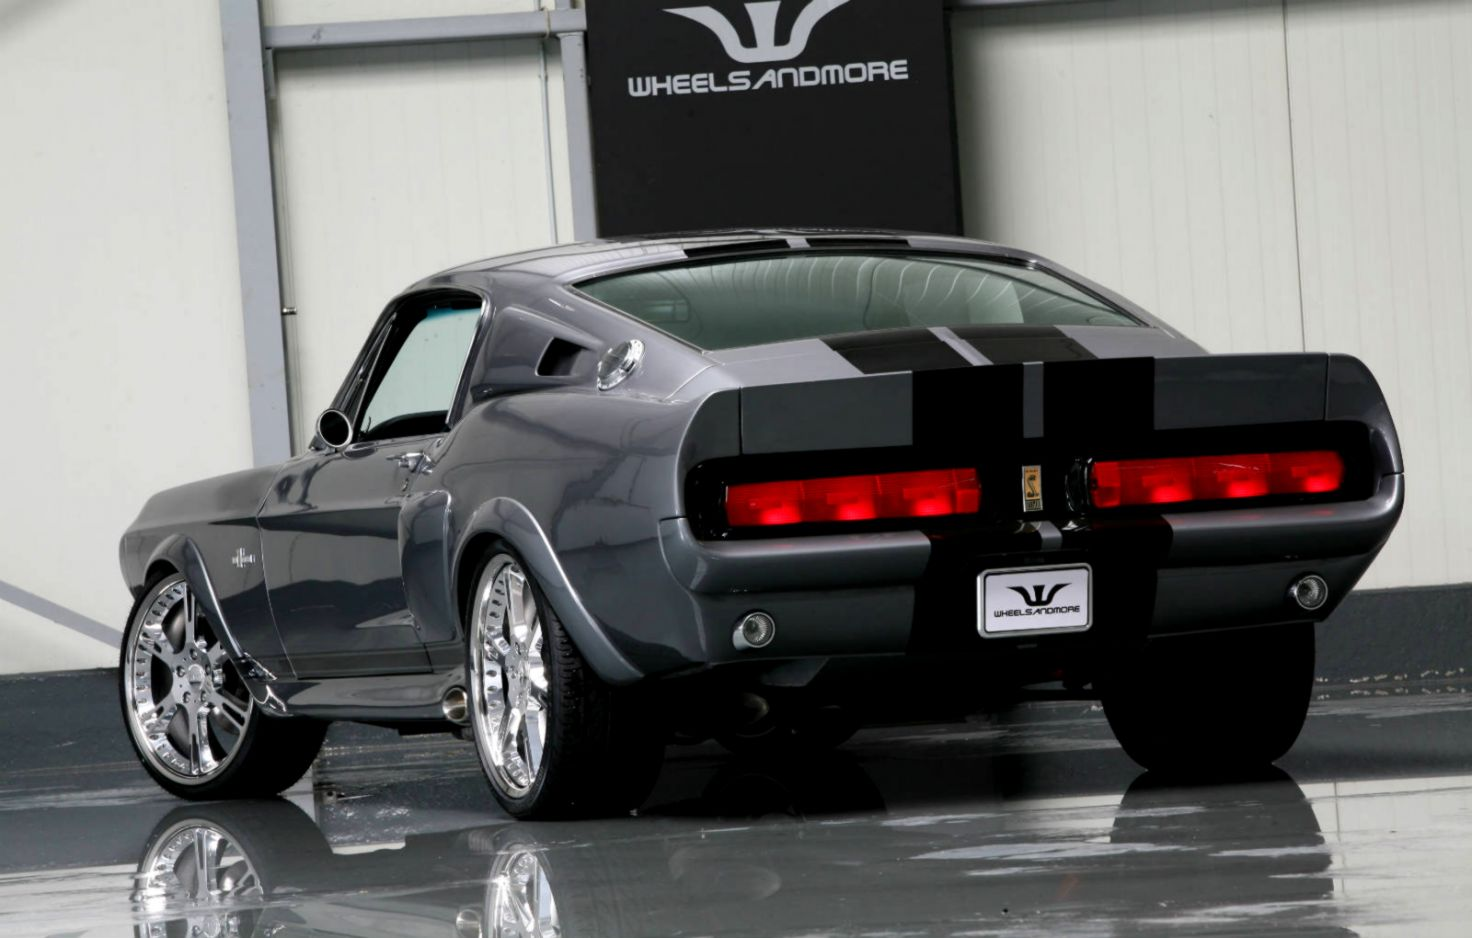 The eleanor mustangs was supporting aâ 1967 mustang fastback